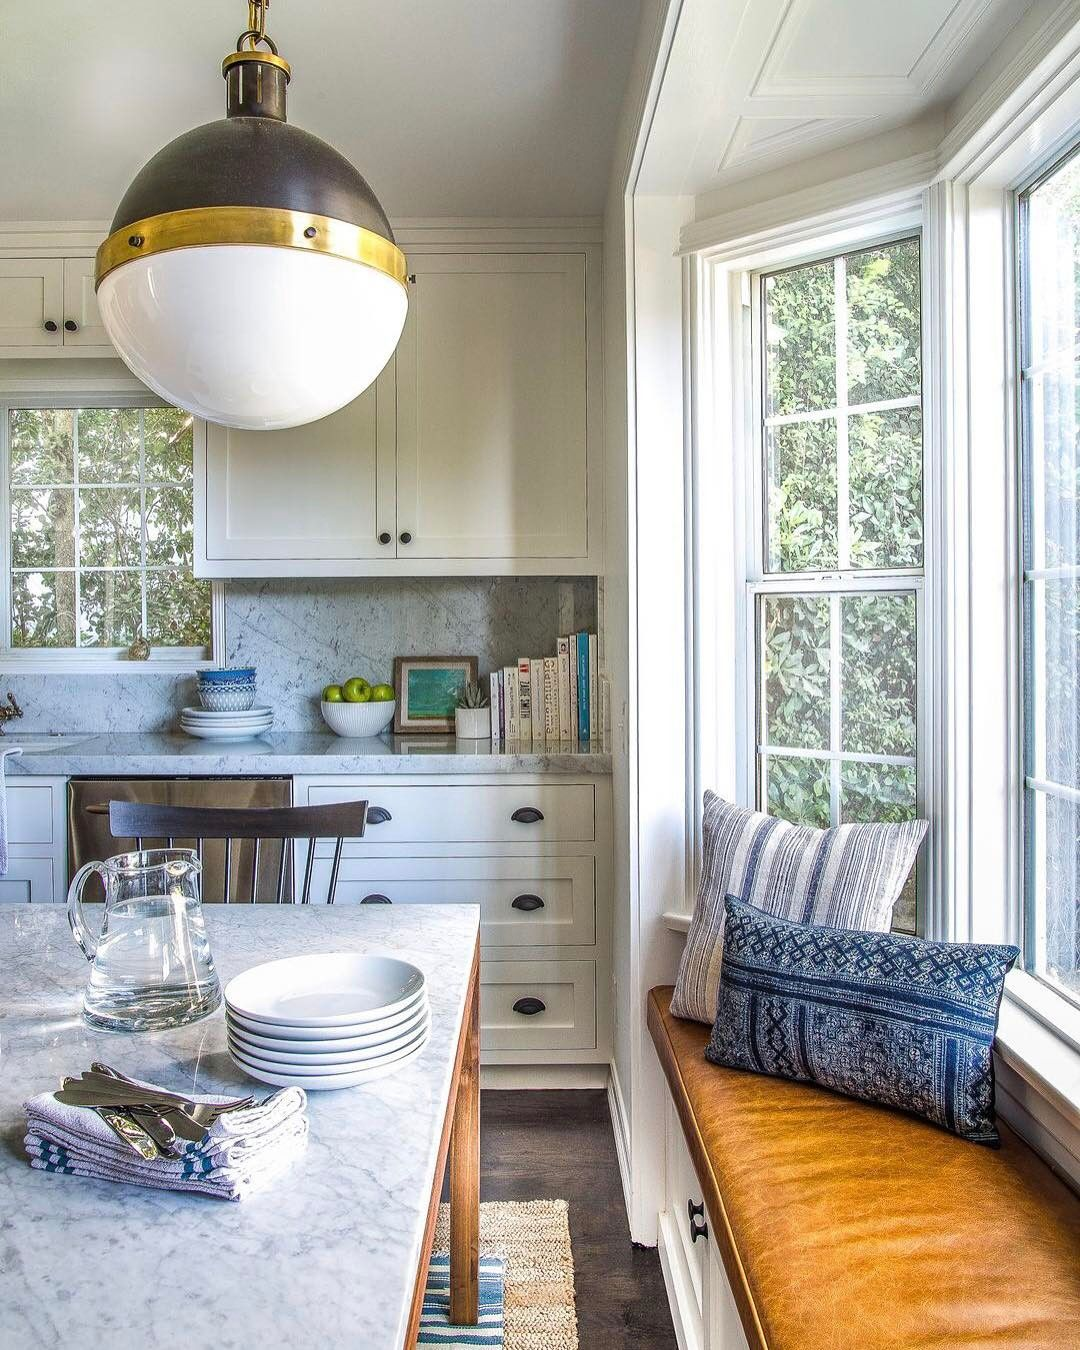 Top 29 Diy Ideas Adding Rustic Farmhouse Feels To Kitchen: Ahem, @mrorlandosoria… Feel Free To Invite Us Over For Brunch Anytime. Loving This Breakfa